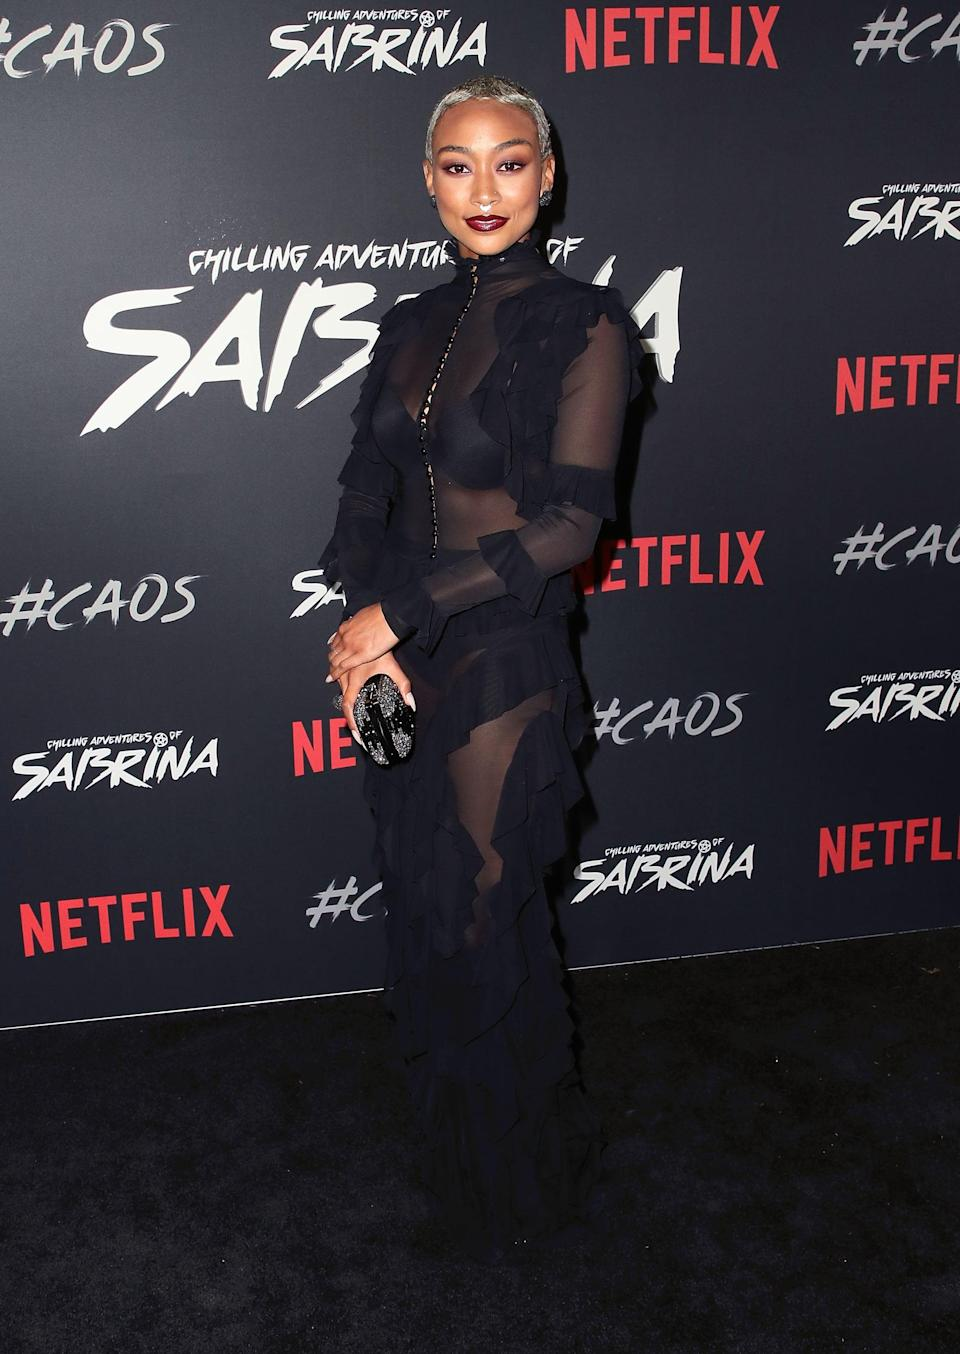 """<p>Tati is best known for playing <a href=""""https://www.popsugar.com/entertainment/Who-Plays-Prudence-Chilling-Adventures-Sabrina-45431980"""" class=""""link rapid-noclick-resp"""" rel=""""nofollow noopener"""" target=""""_blank"""" data-ylk=""""slk:Prudence on Netflix's Chilling Adventures of Sabrina"""">Prudence on Netflix's <b>Chilling Adventures of Sabrina</b></a>, but she's also had roles on Disney's <b>K.C. Undercover</b>, <b>The 100</b>, and <b>The Owl House</b>. When asked how she brings variation to her characters, Tati told <b>Wonderland</b> that she looks for """"points of relativity to understand the character better."""" She says this method allows her to """"act out nuanced characters naturally.""""</p>"""